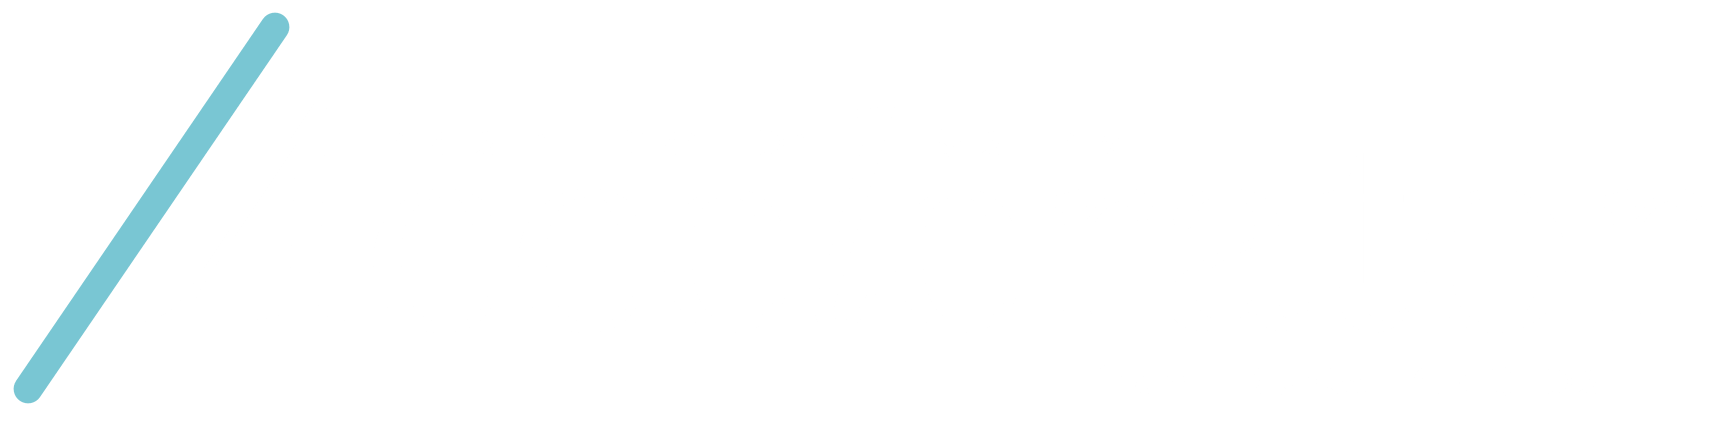 EducationCloset Arts Integration and STEAM Accelerator Program